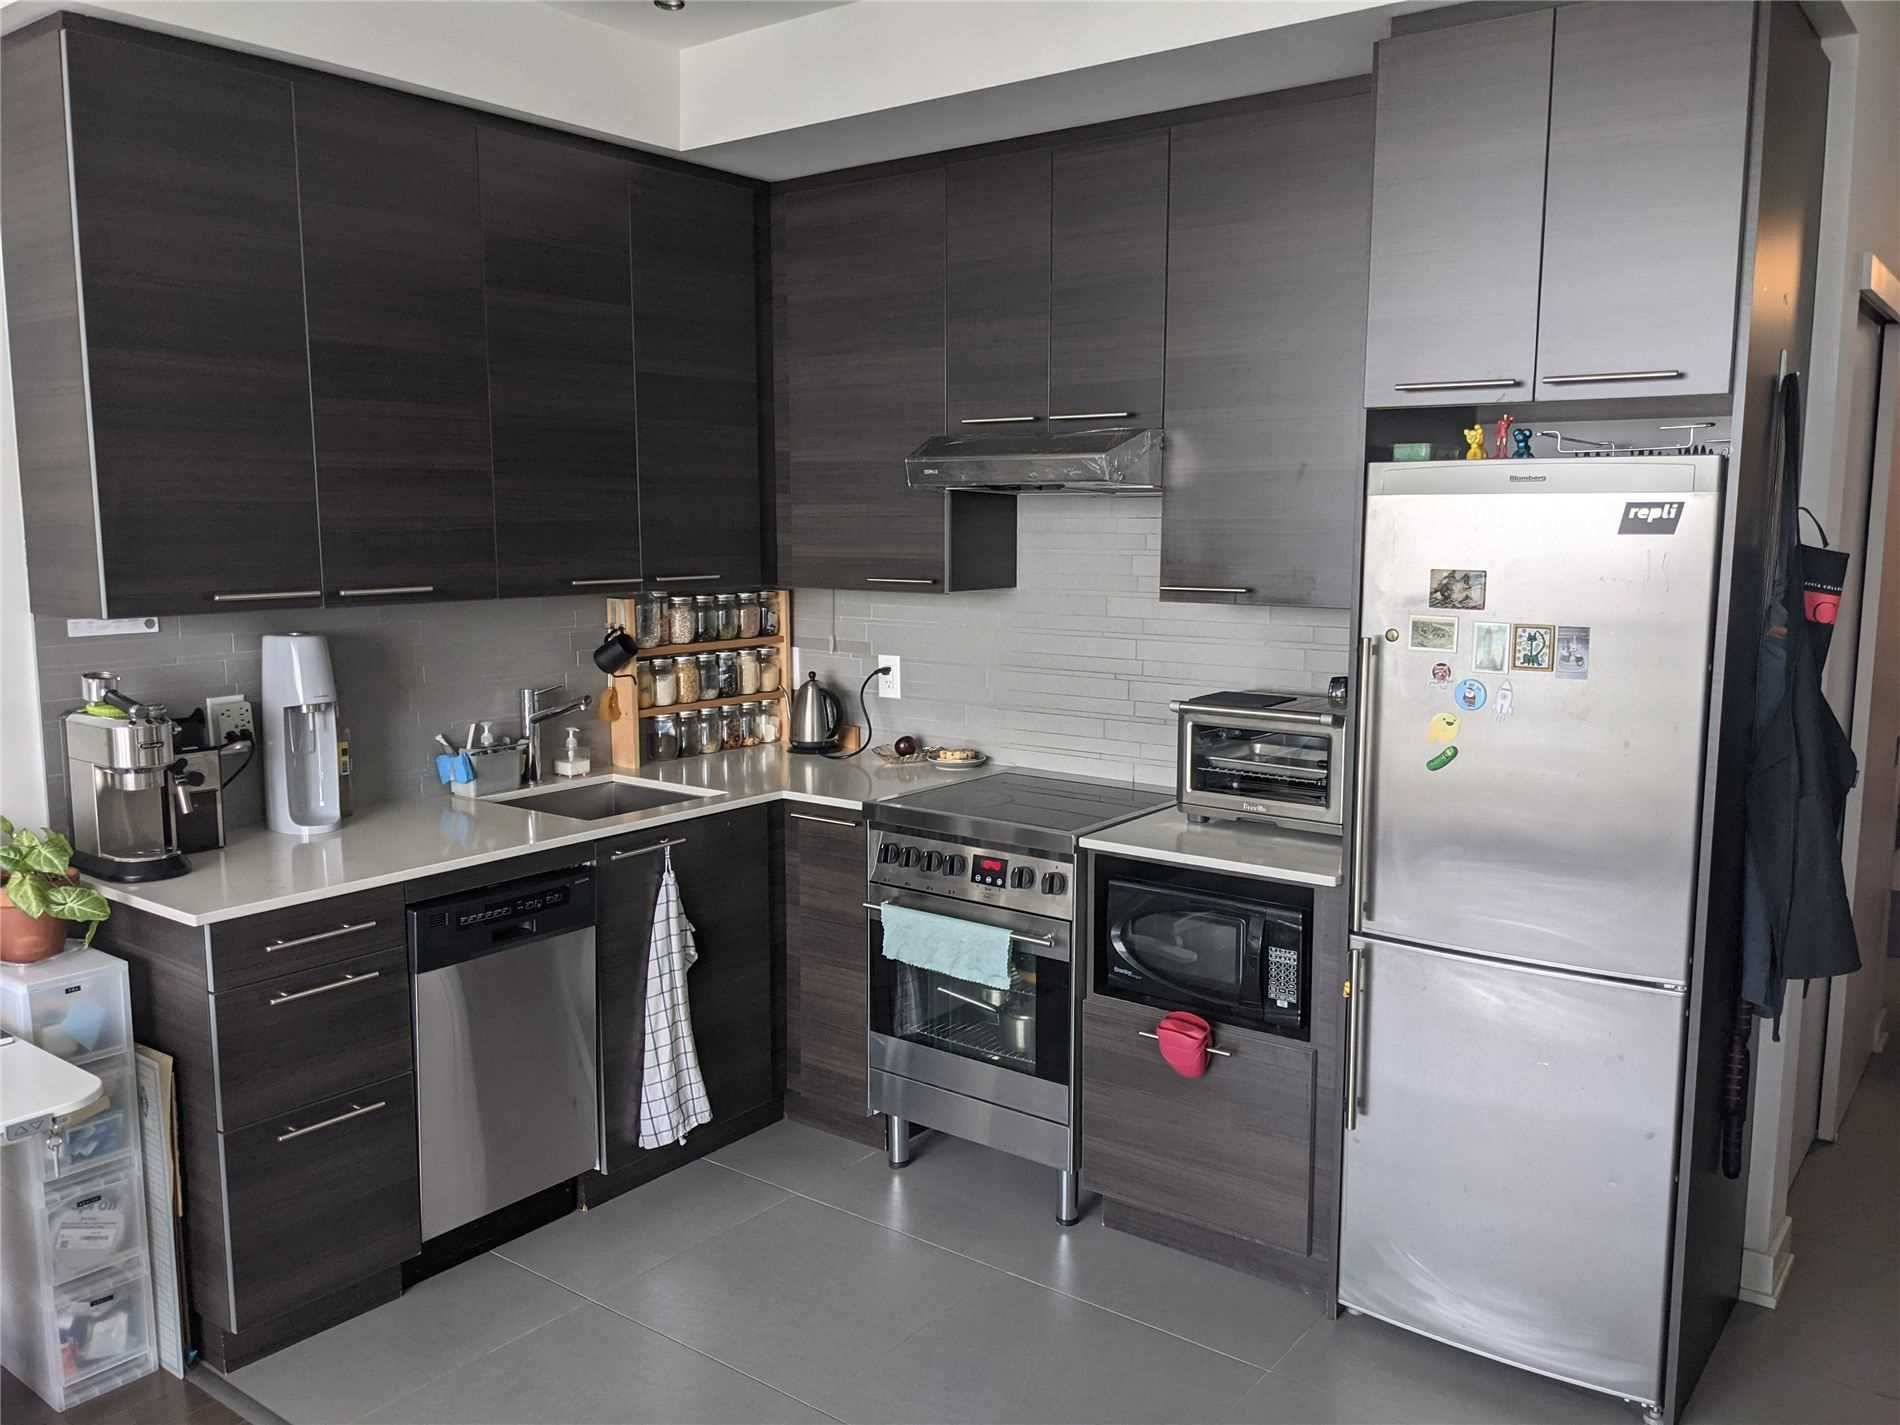 1 Market St, unit 2208 for rent in Toronto - image #2